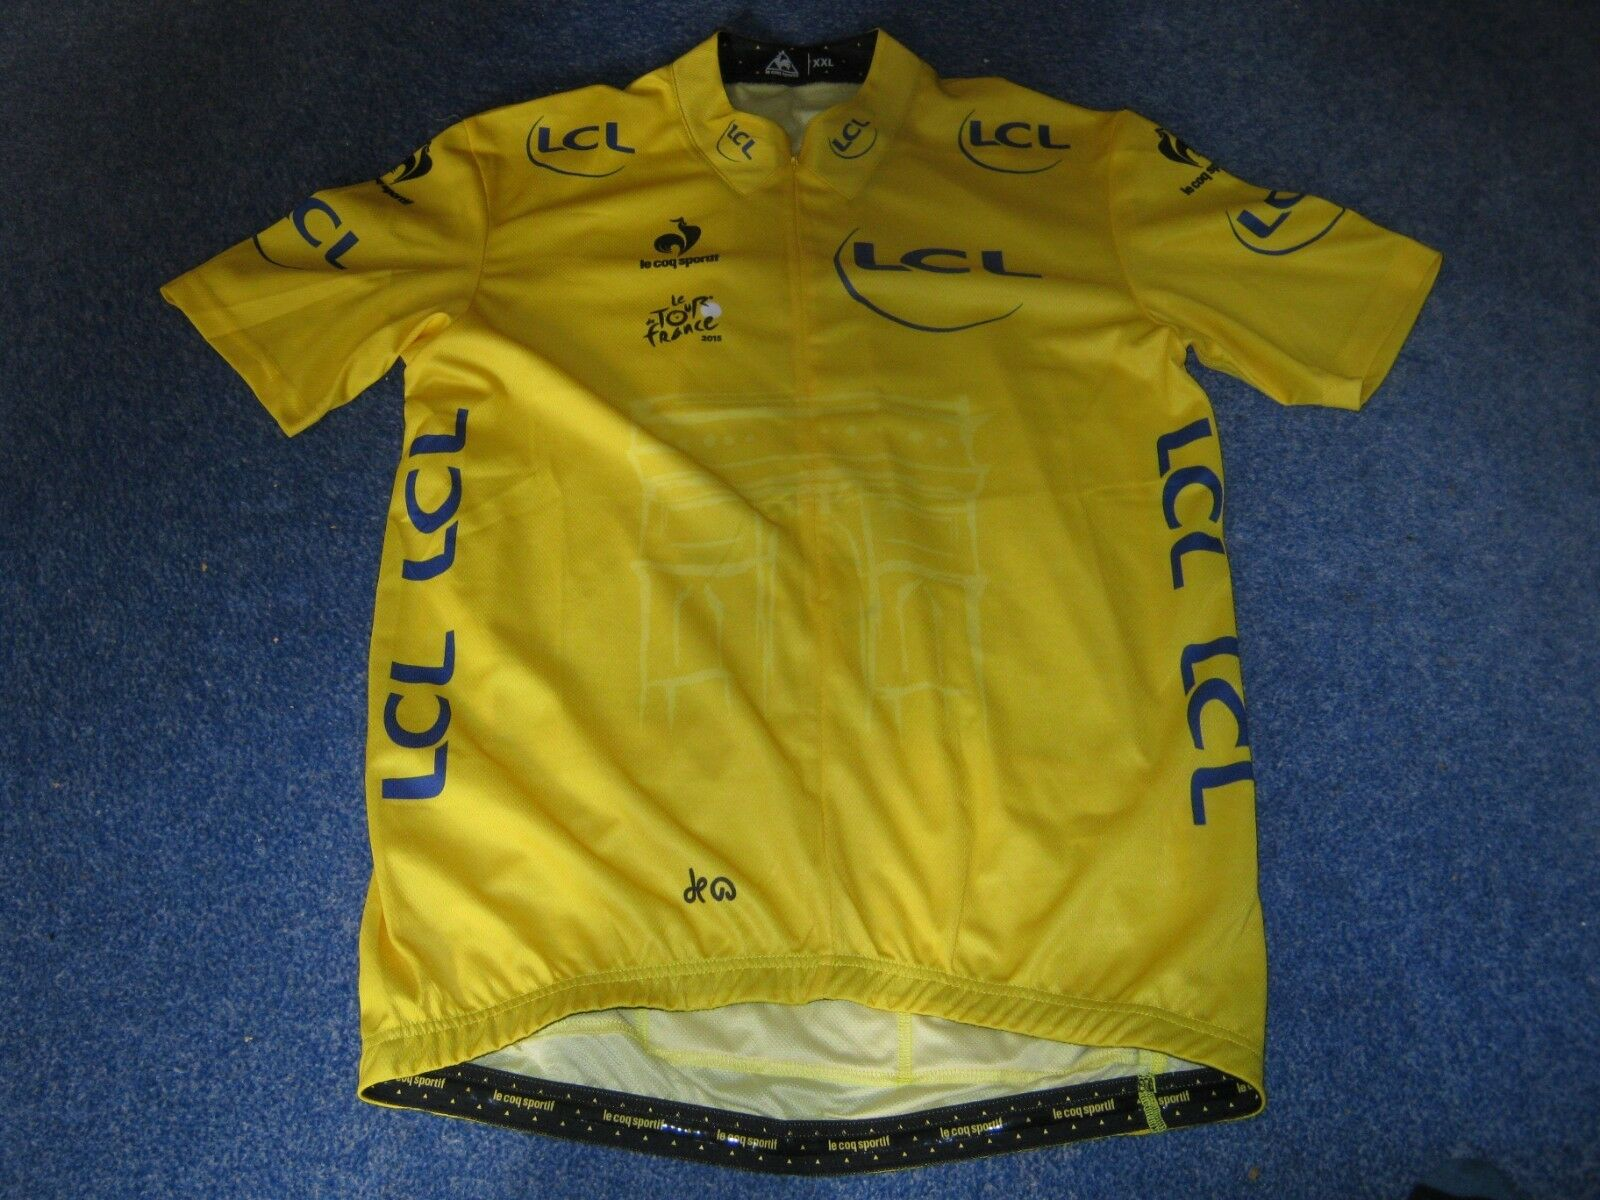 TOUR DE FRANCE 2015 LCS Gelb LEADERS CYCLING JERSEY  UNUSED